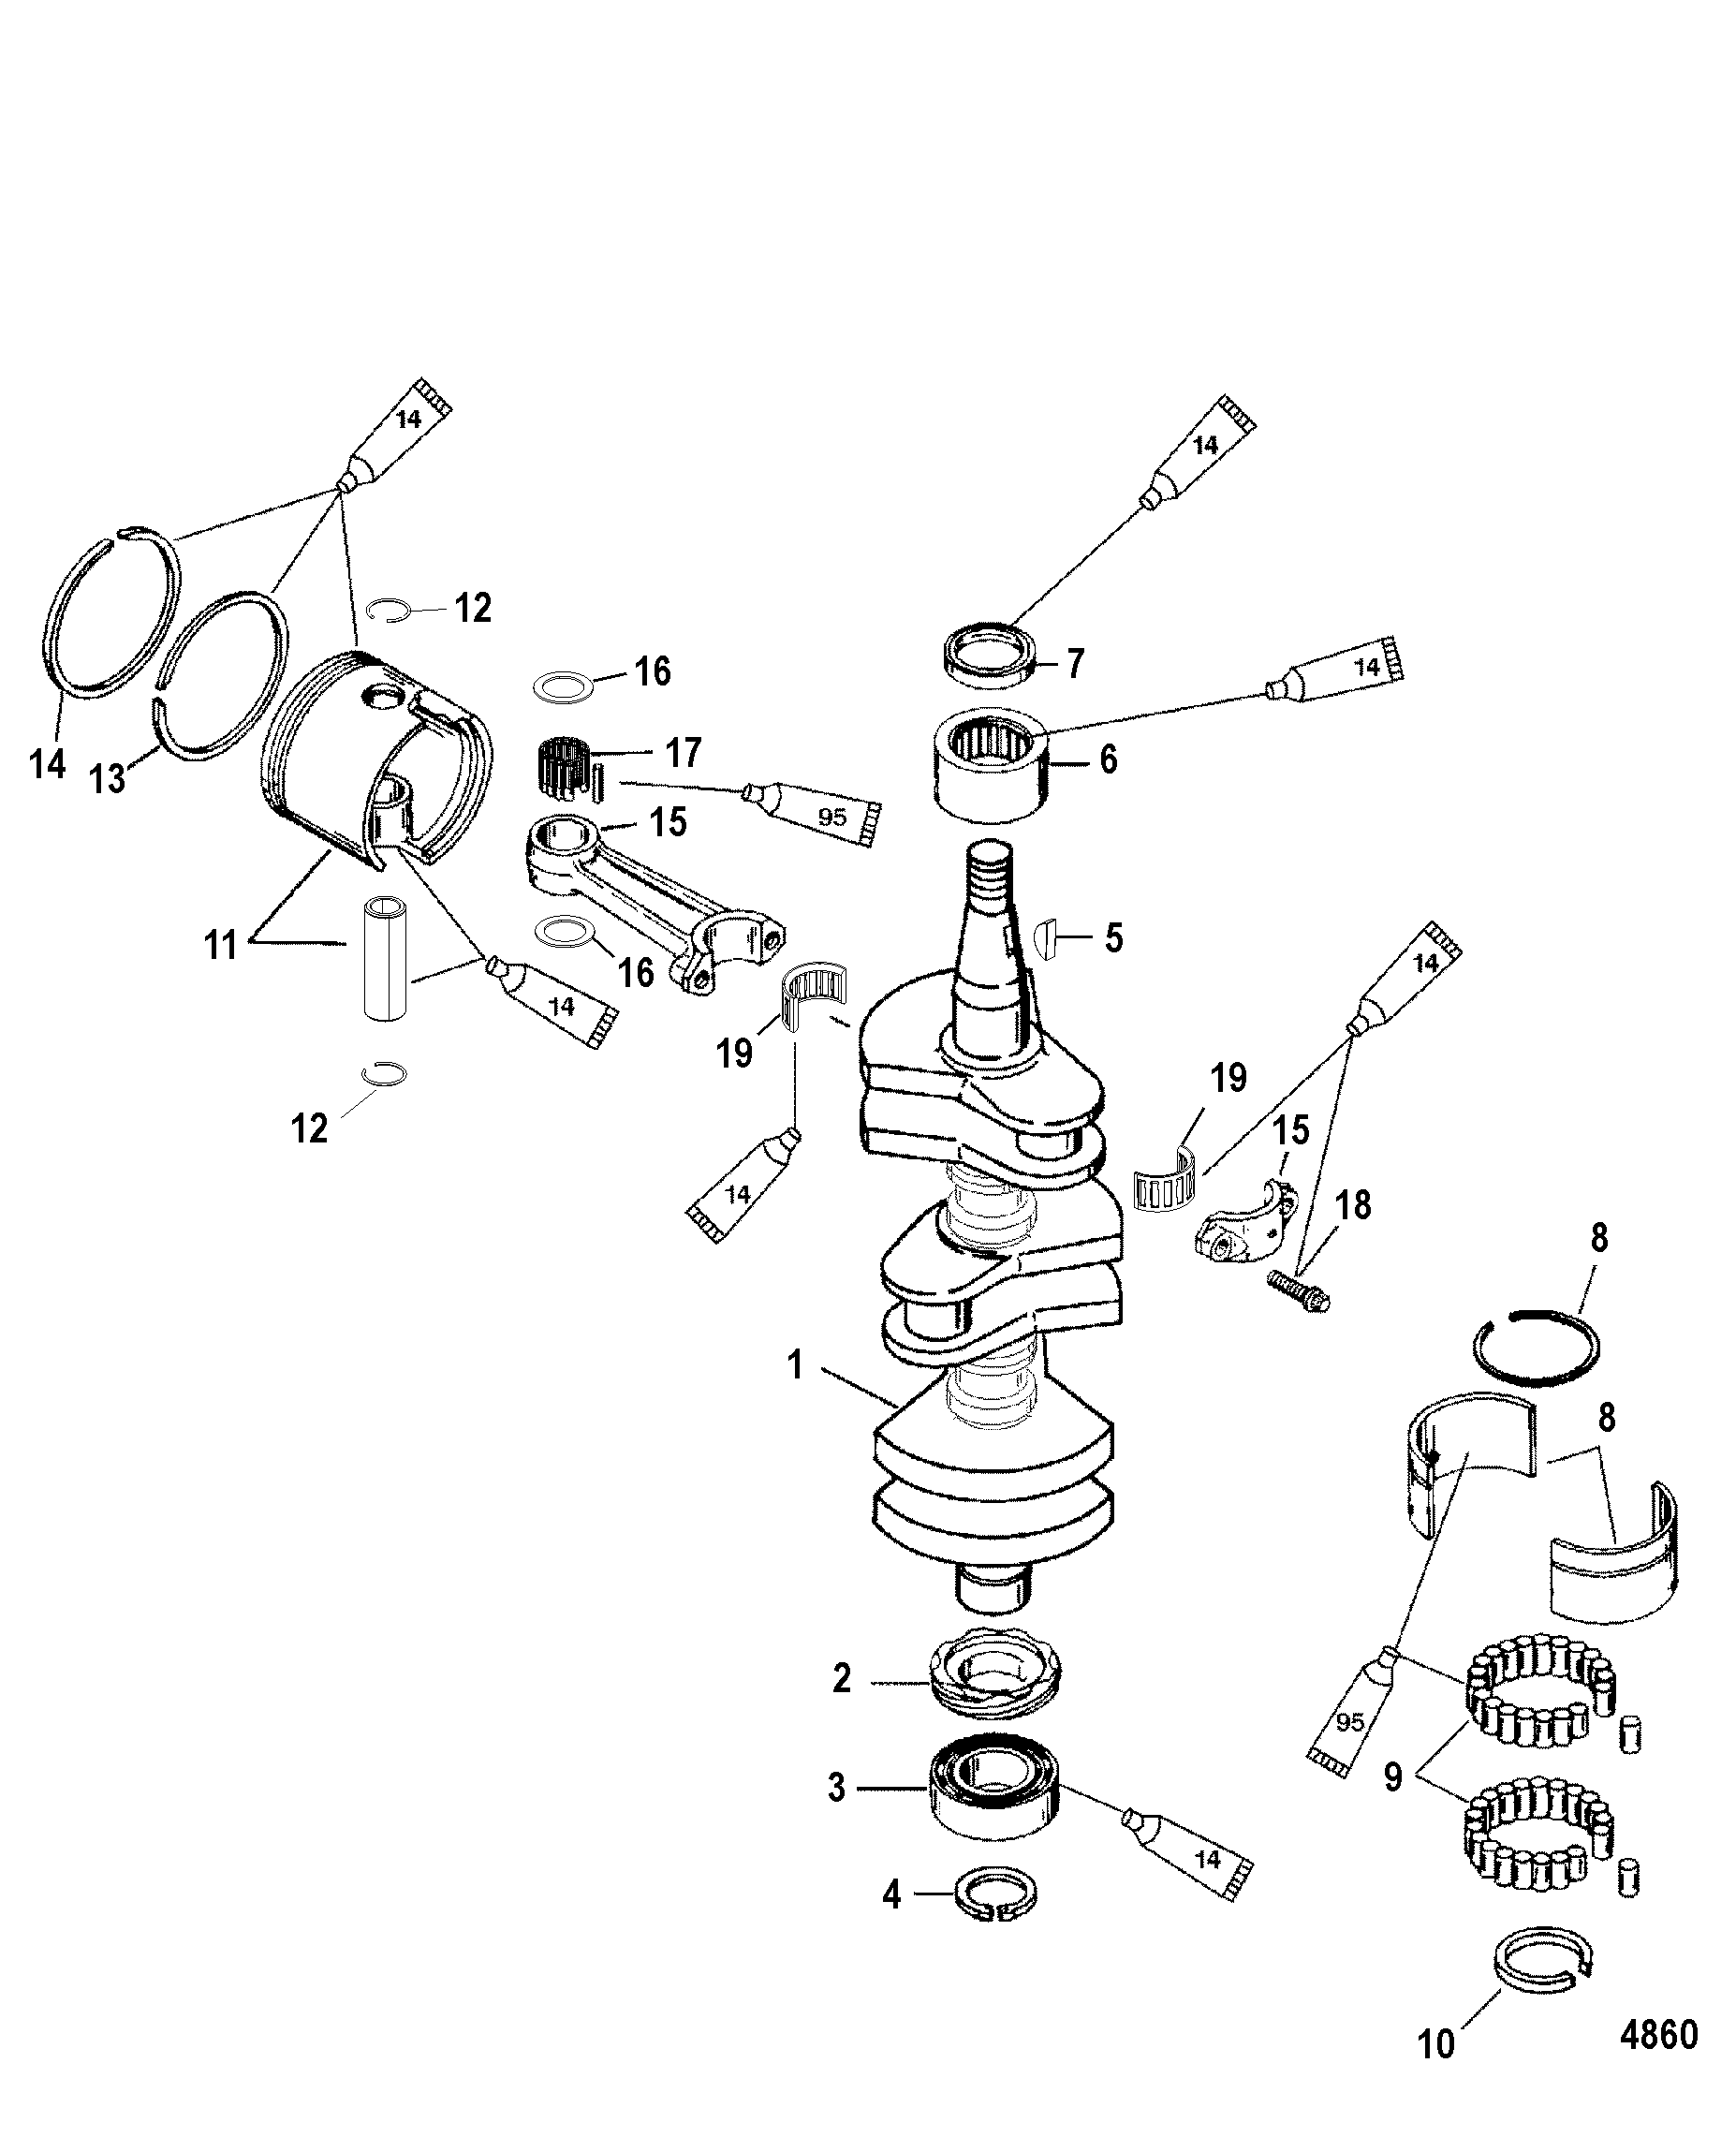 Crankshaft, Pistons and Connection Rods FOR MARINER